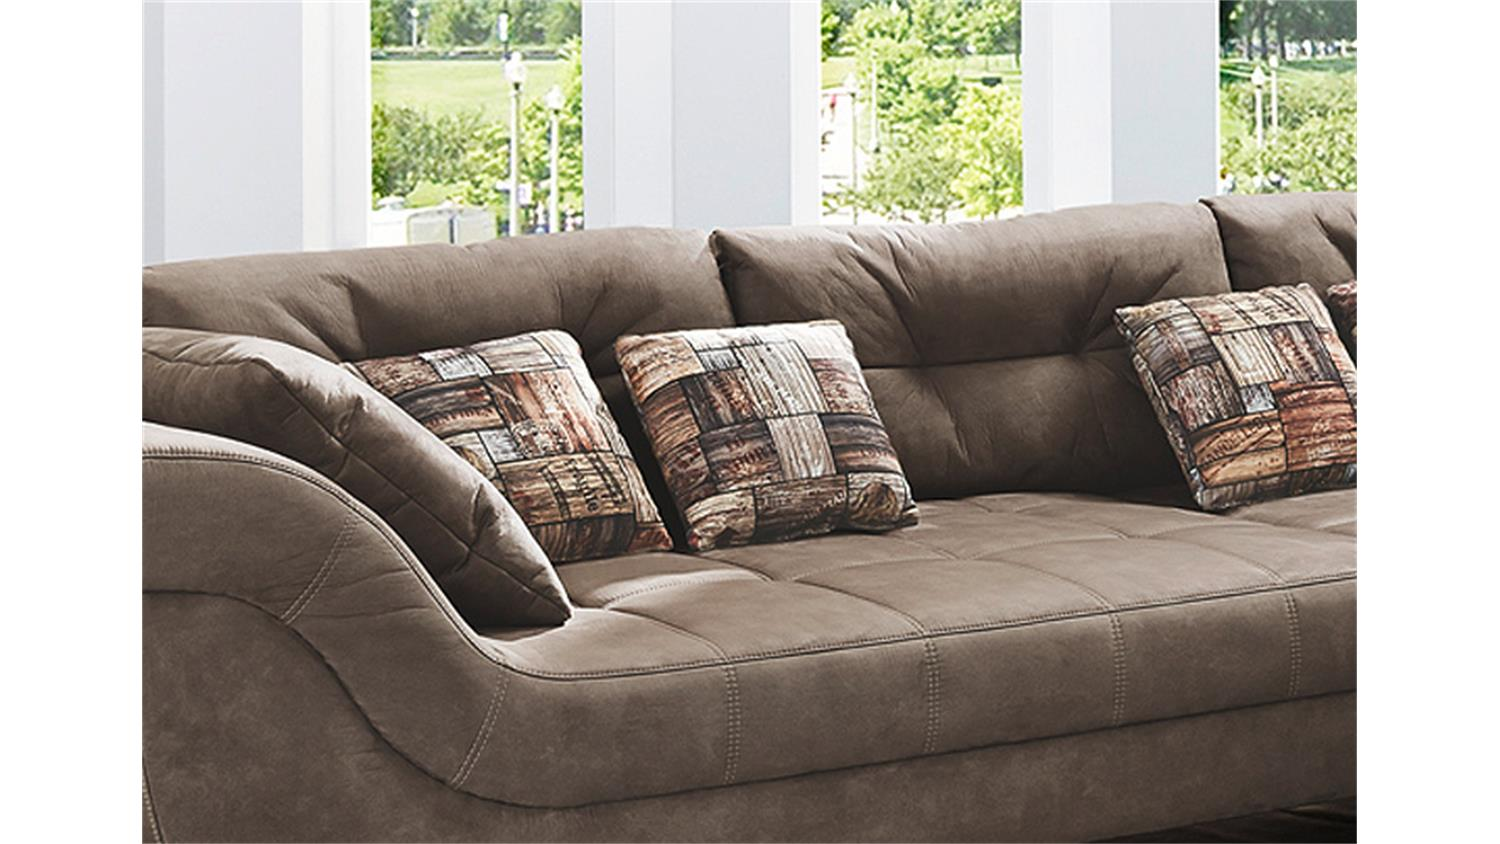 Eck Sofa Wohnlandschaft San Francisco Sofa Ecksofa In Antikbraun